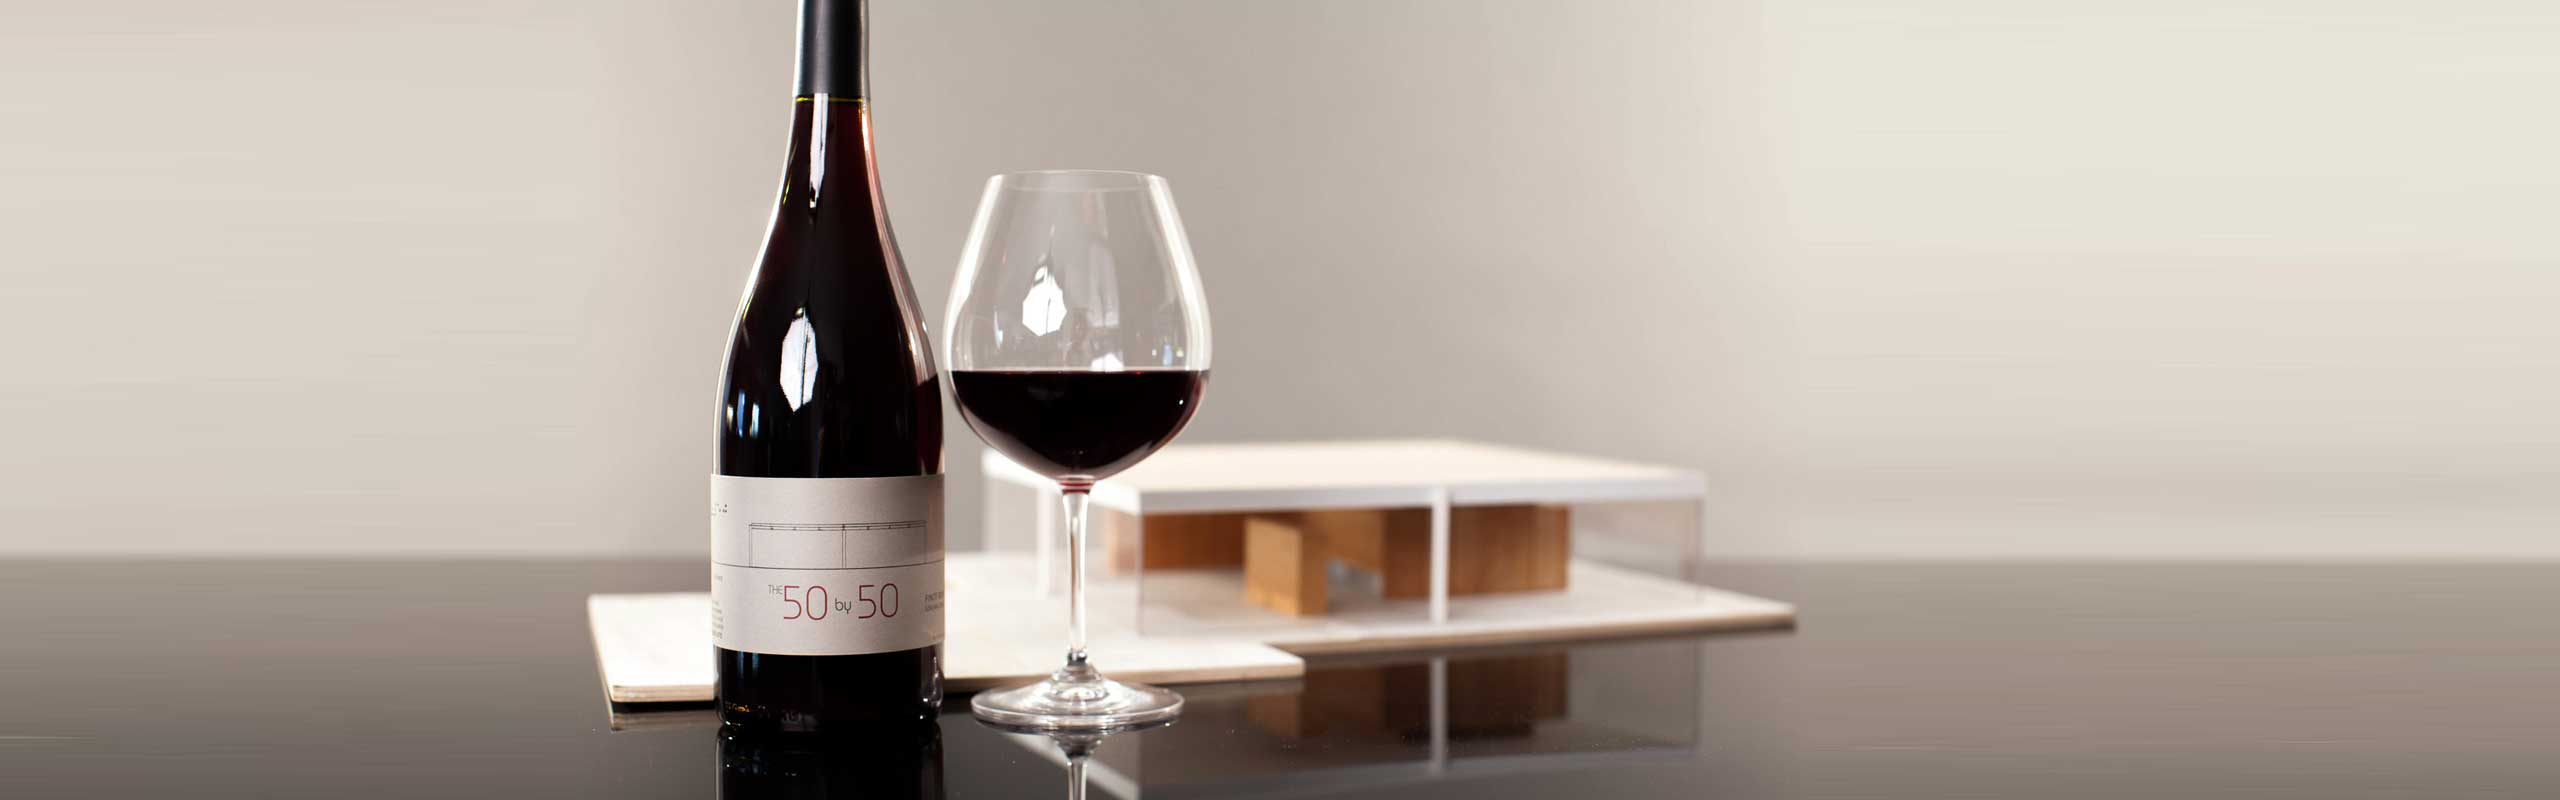 The 50 by 50, 2015 Pinot Noir, and the 50X50 house model